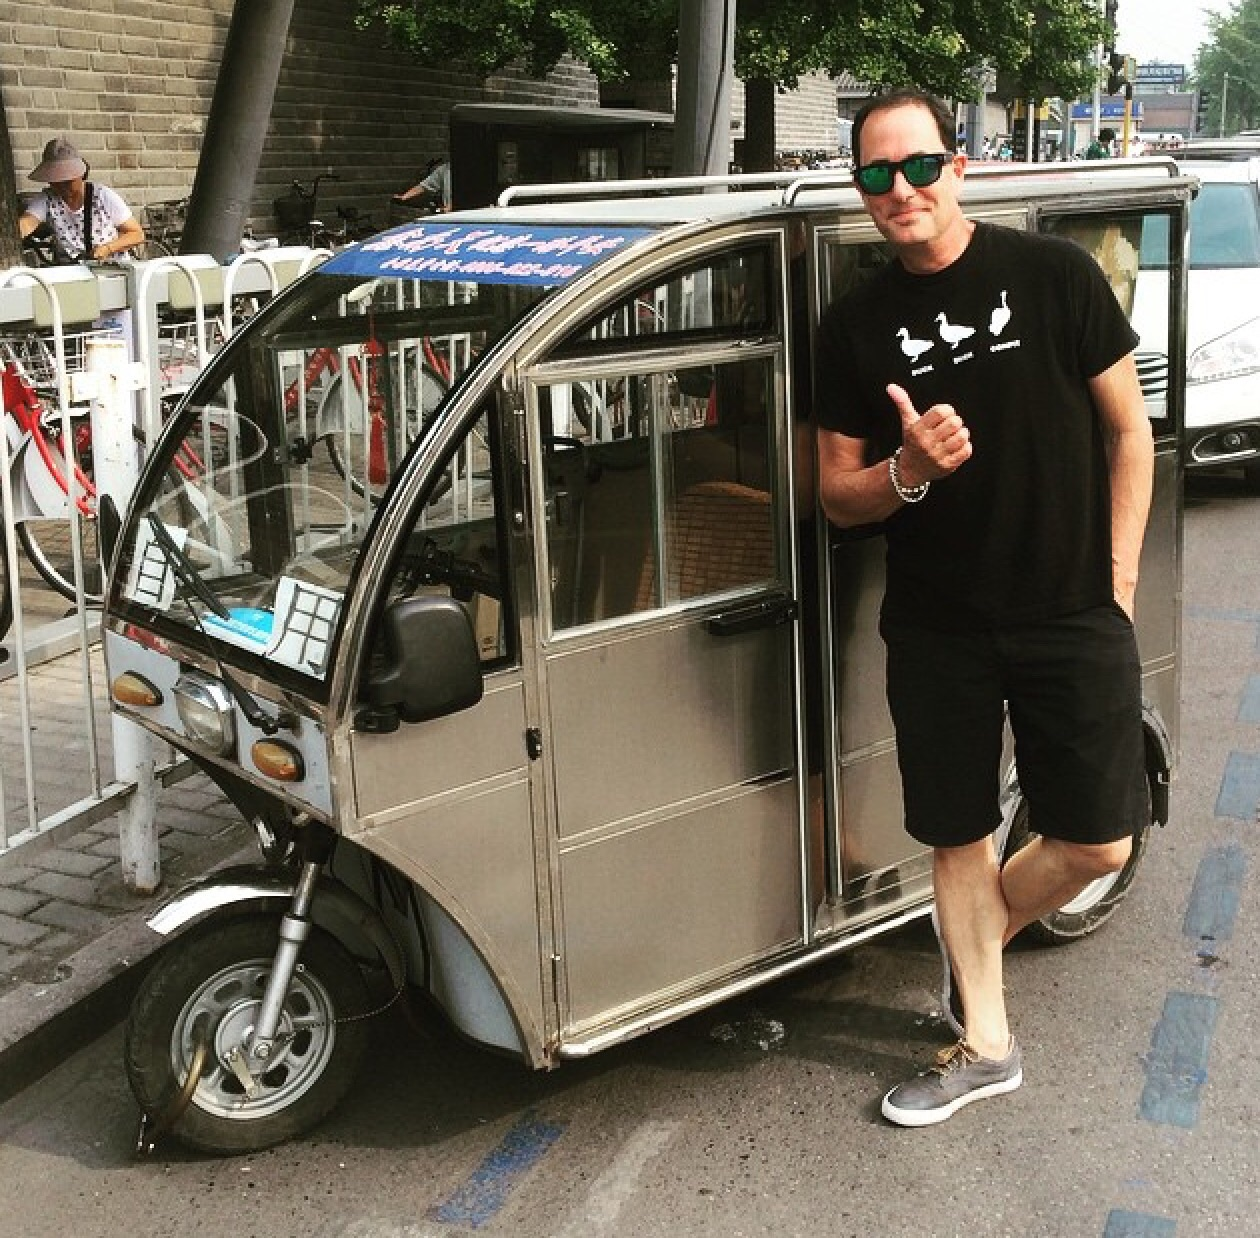 My new favorite car, perfect for supermarket runs @ Beijing, China